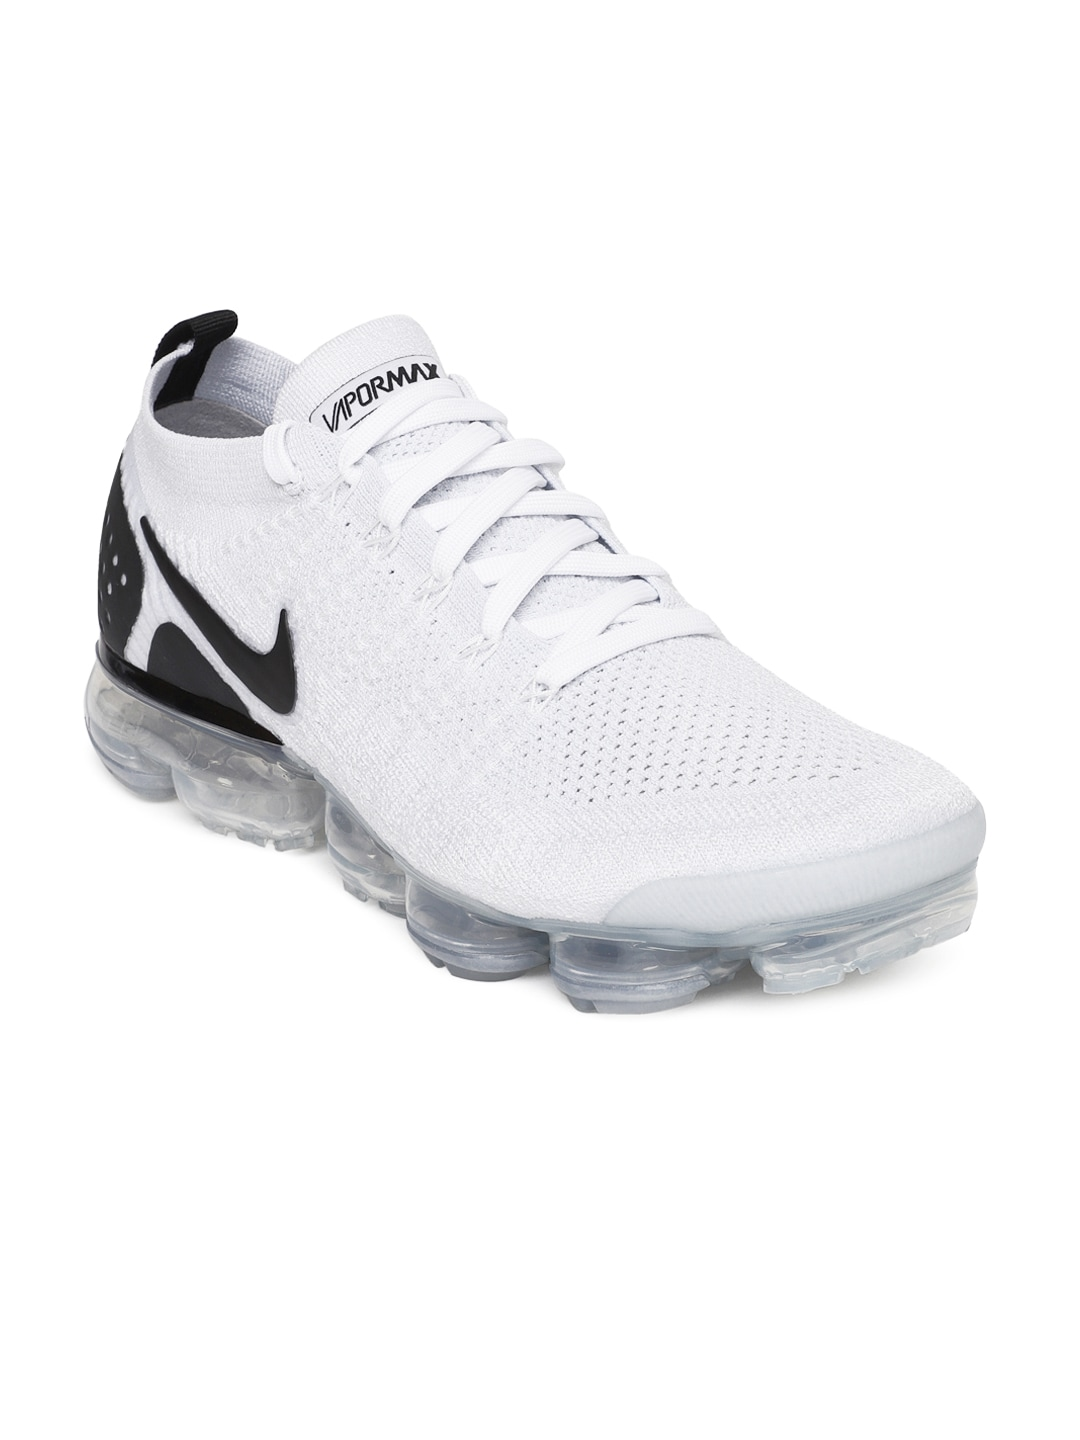 32eb2c54f458e f8a00f11-3e71-4663-856b-2691875a7aa31545828488232-Nike-Men-White-Air -VaporMax-Flyknit-2-Running-Shoes-86615458-1.jpg